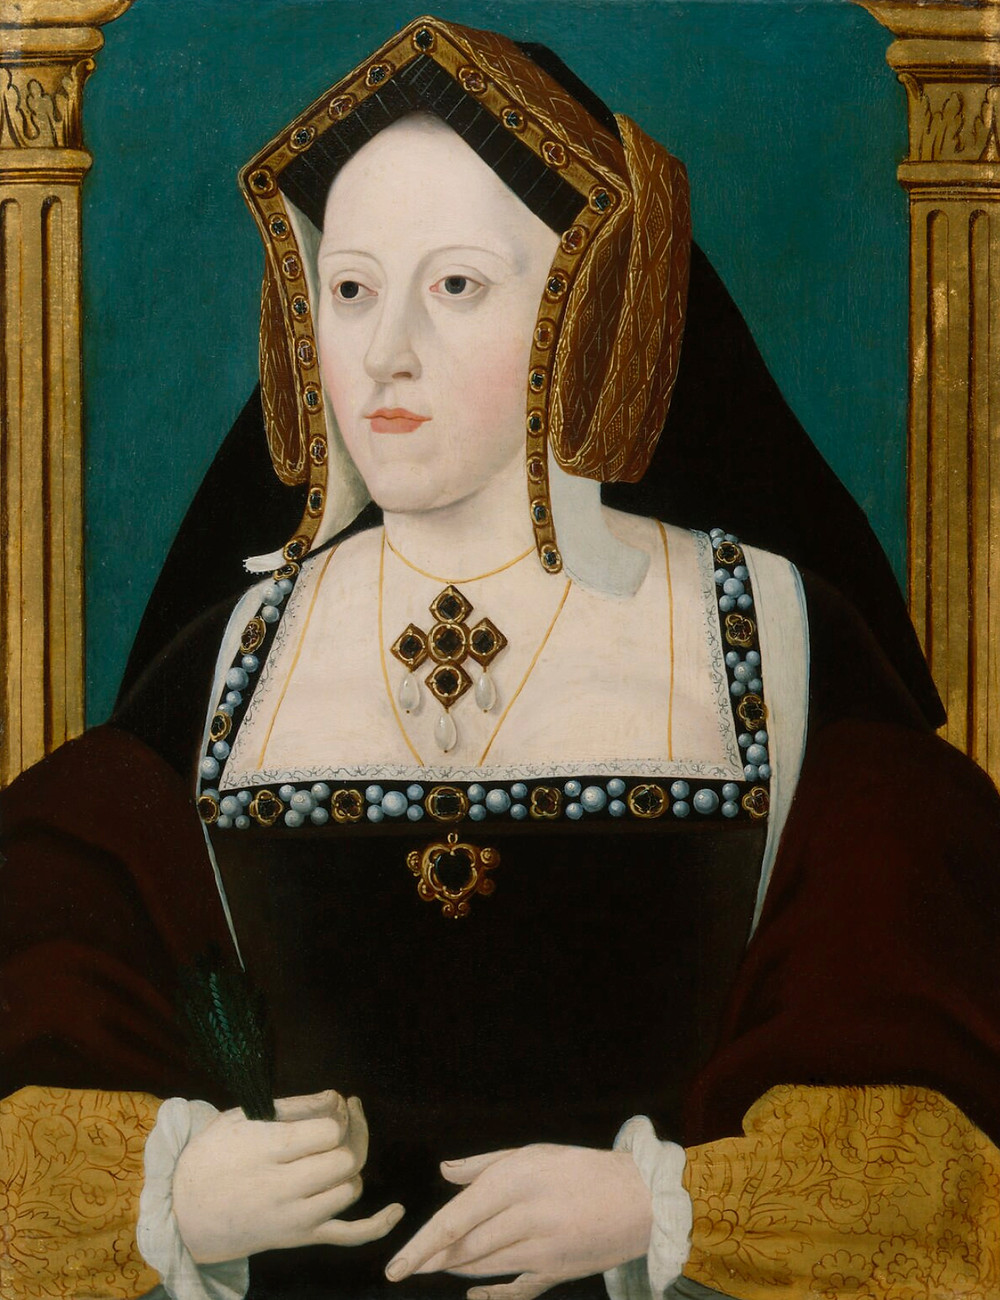 18th-century copy of a lost original portrait of Katharine of Aragon